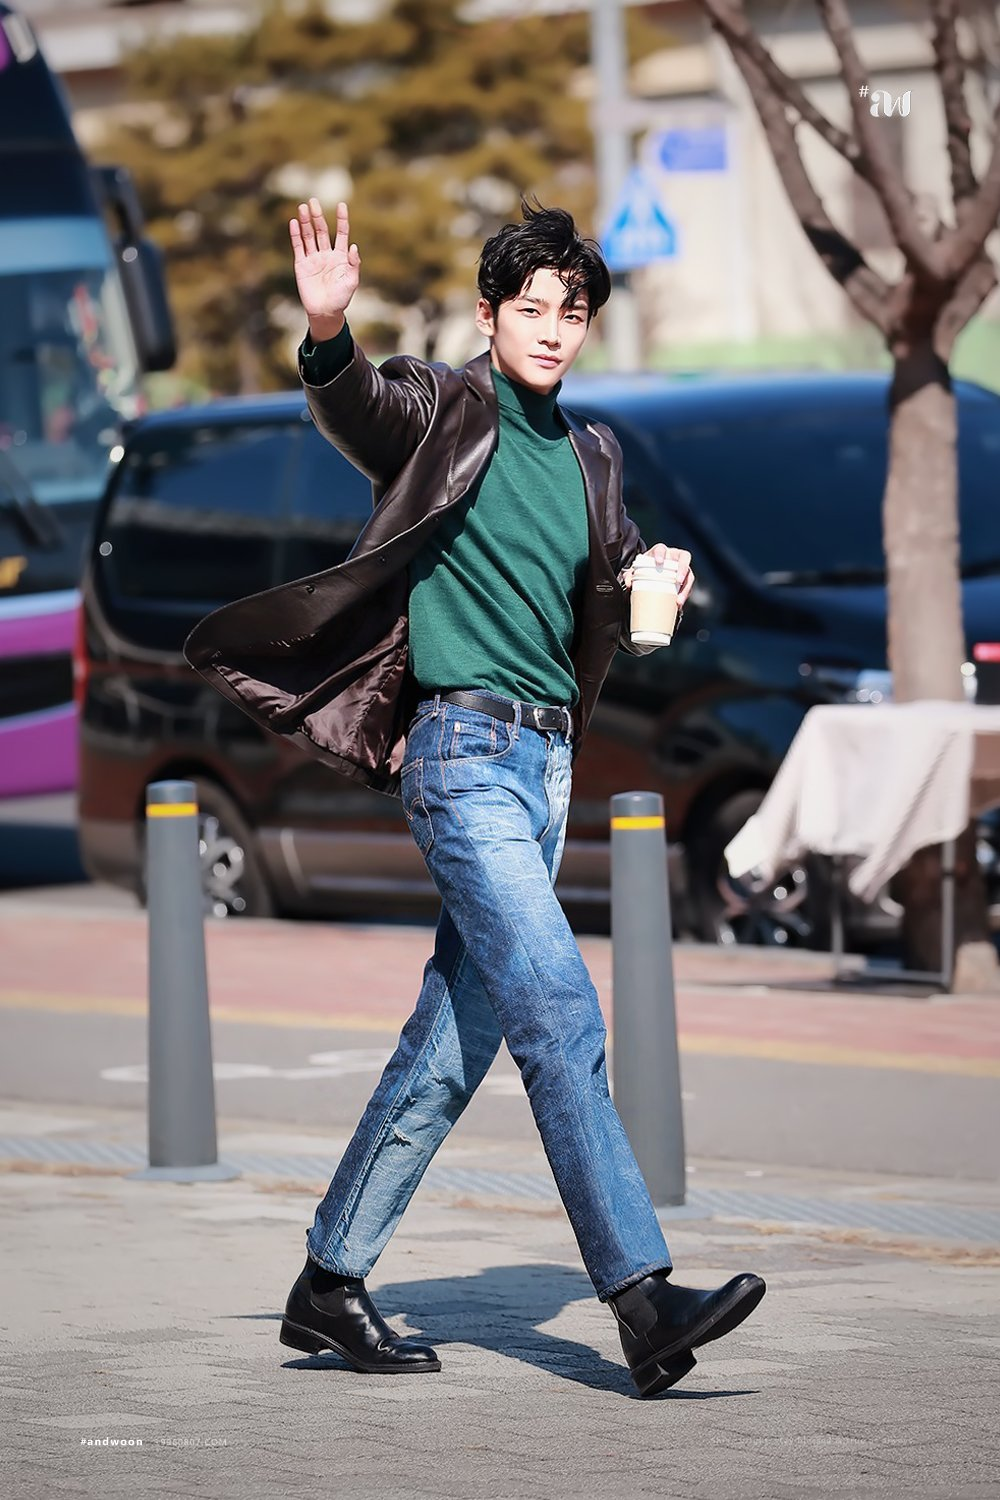 rowoon height, sf9 rowoon, rowoon, sf9 rowoon, rowoon tall, rowoon pictures, rowoon 2019